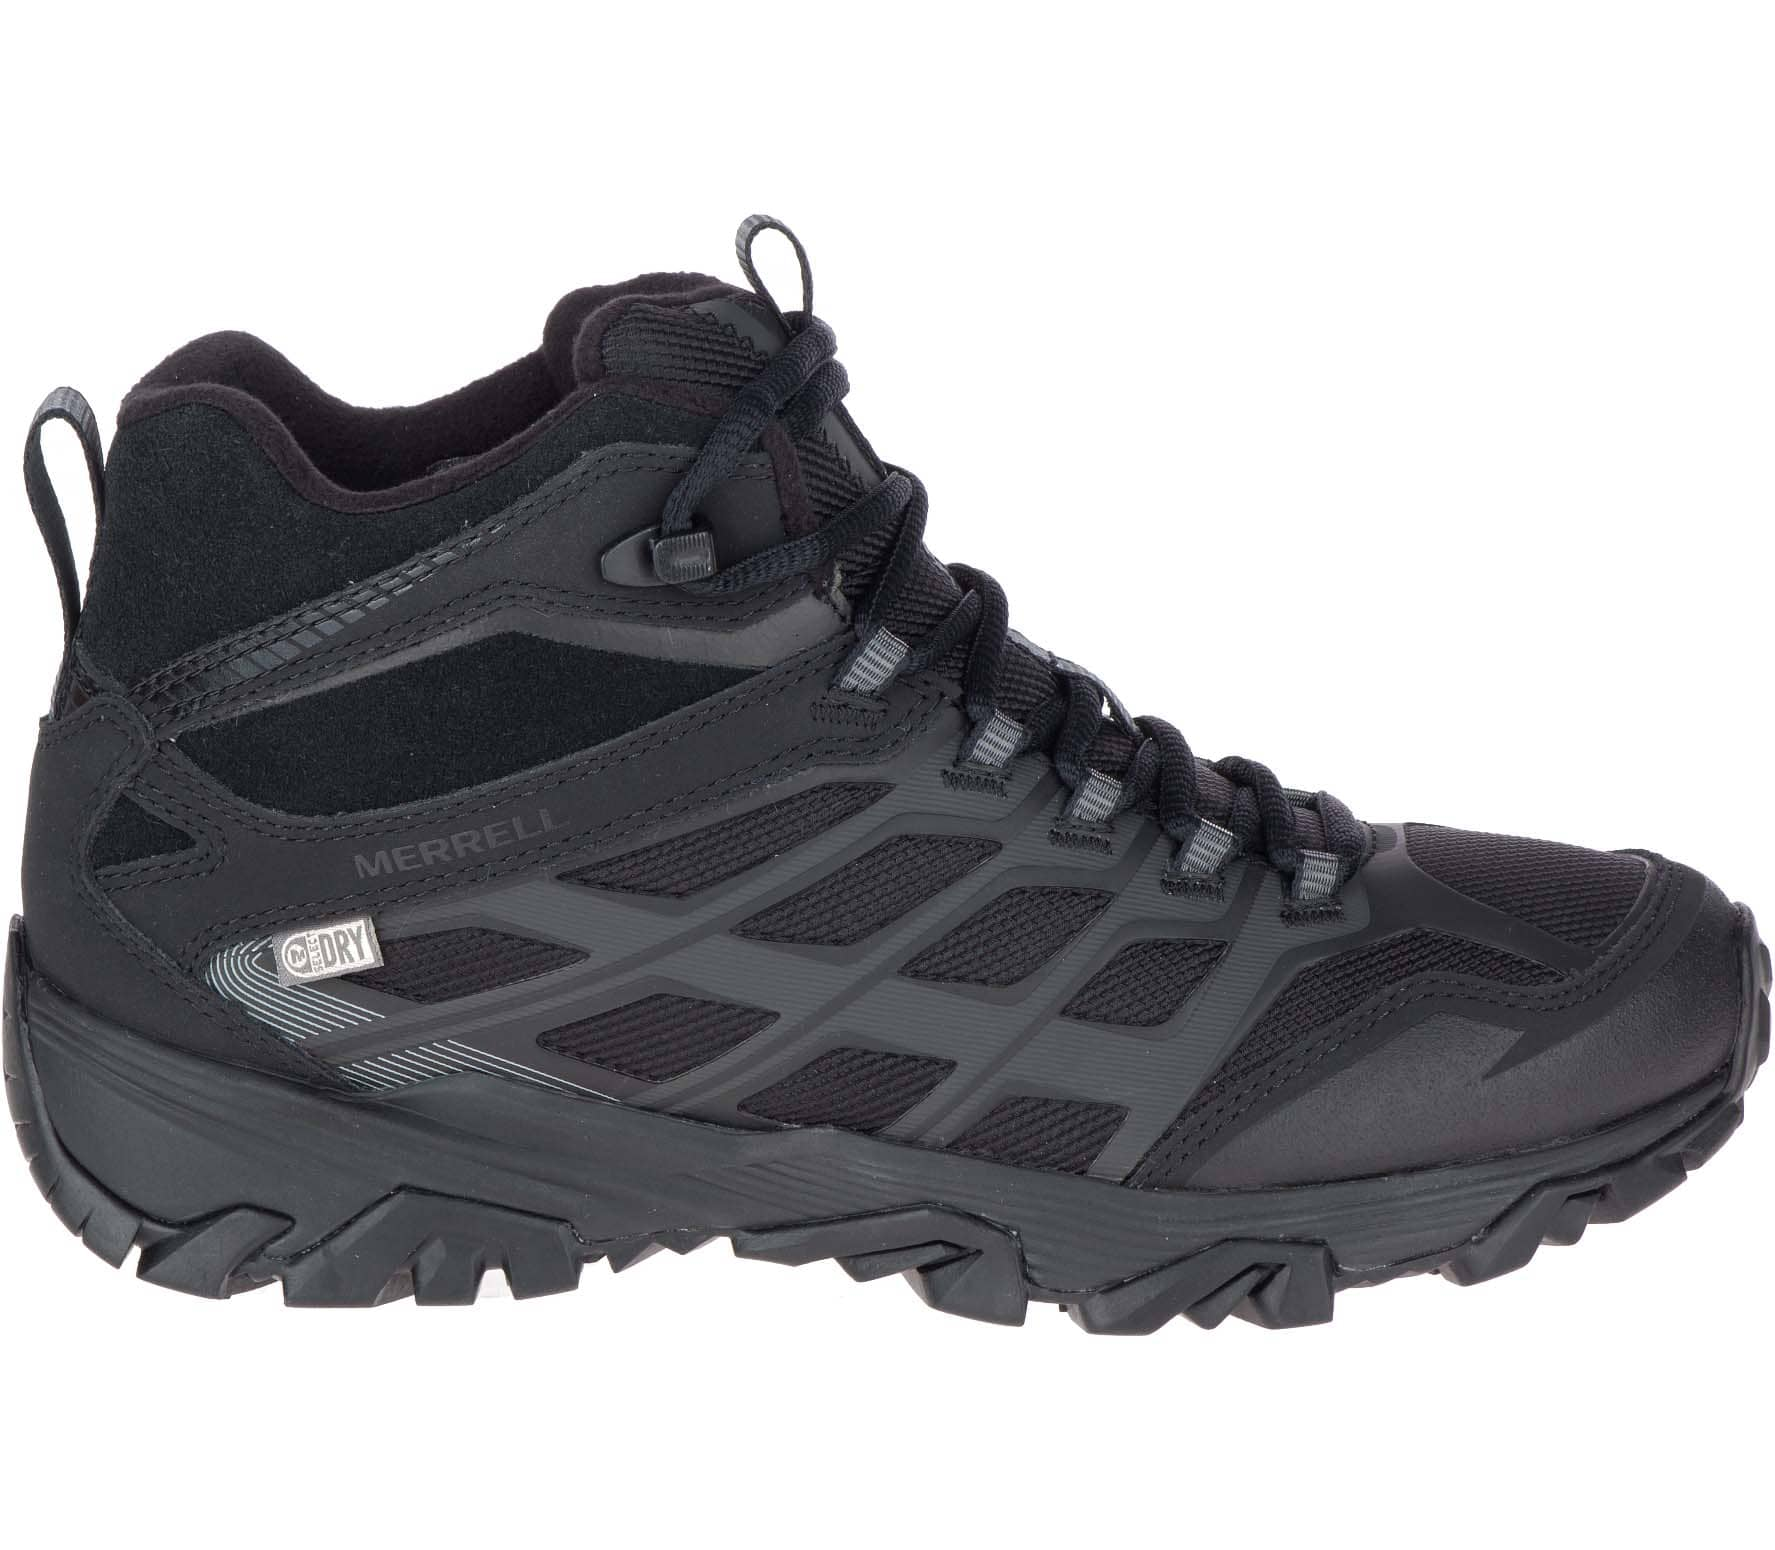 Moab Fst Ice+ Thermo WP Women Winter Shoes